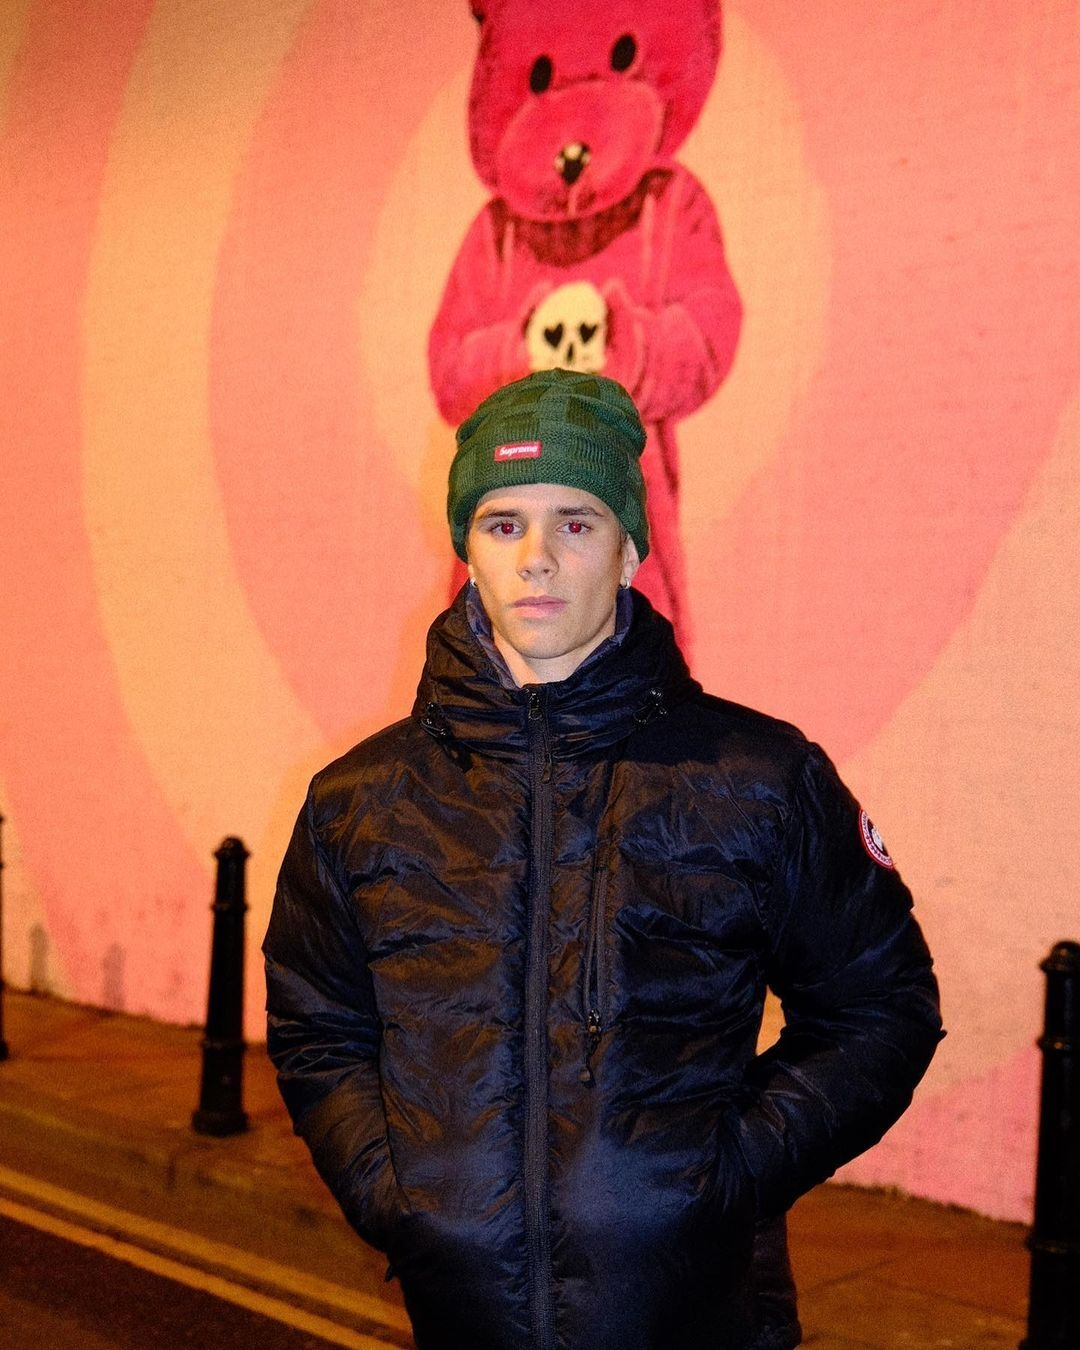 Romeo Beckham with LUAP's Pink Bear mural Love Life